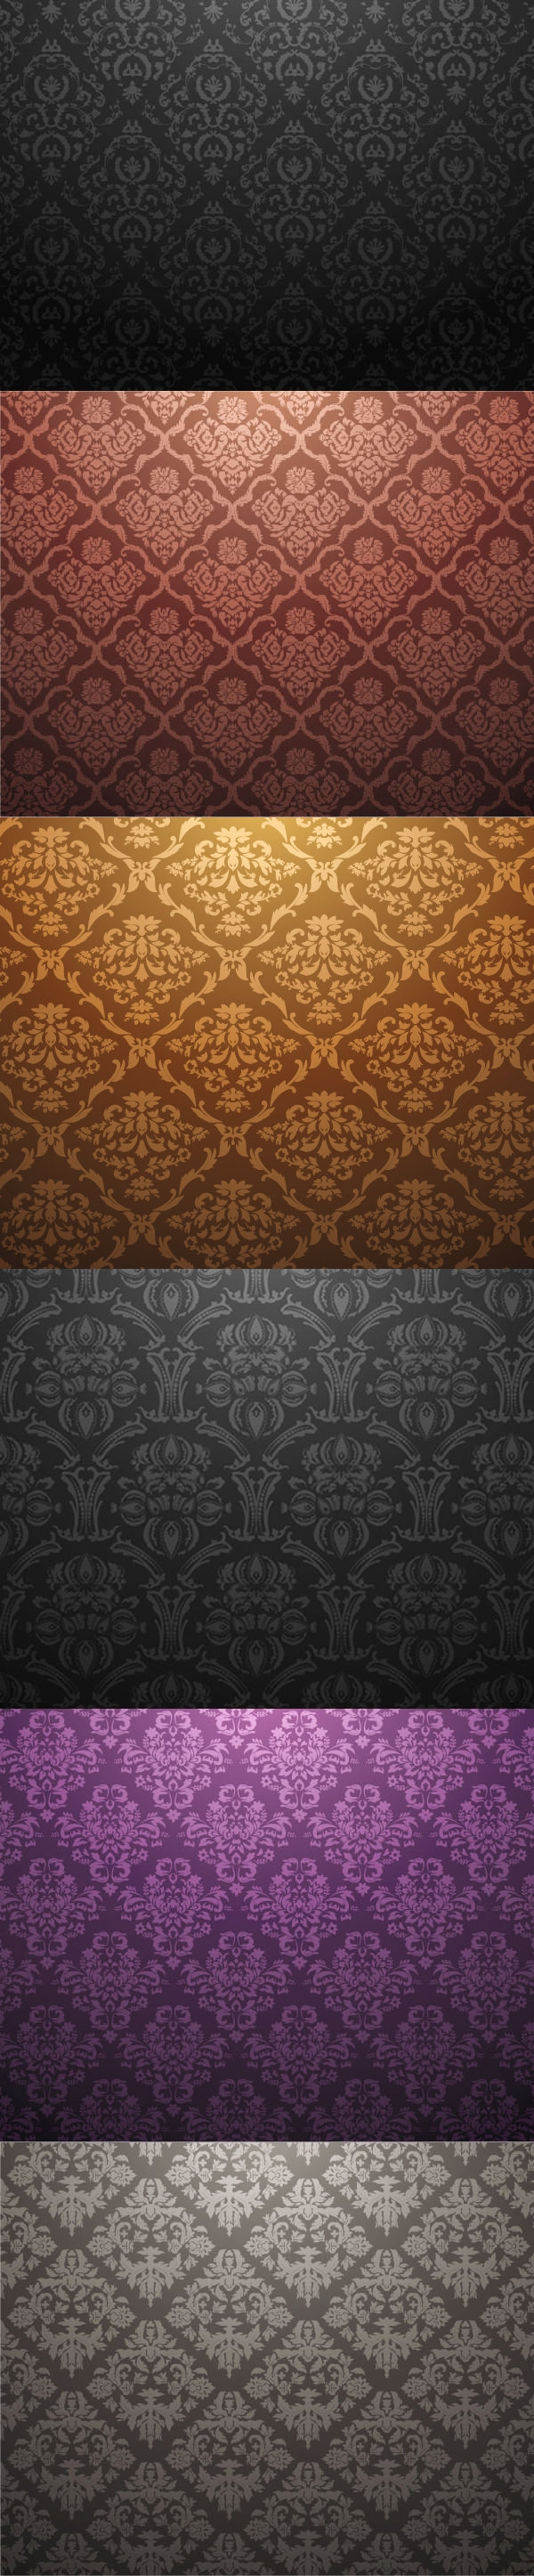 6-seamless-patterns